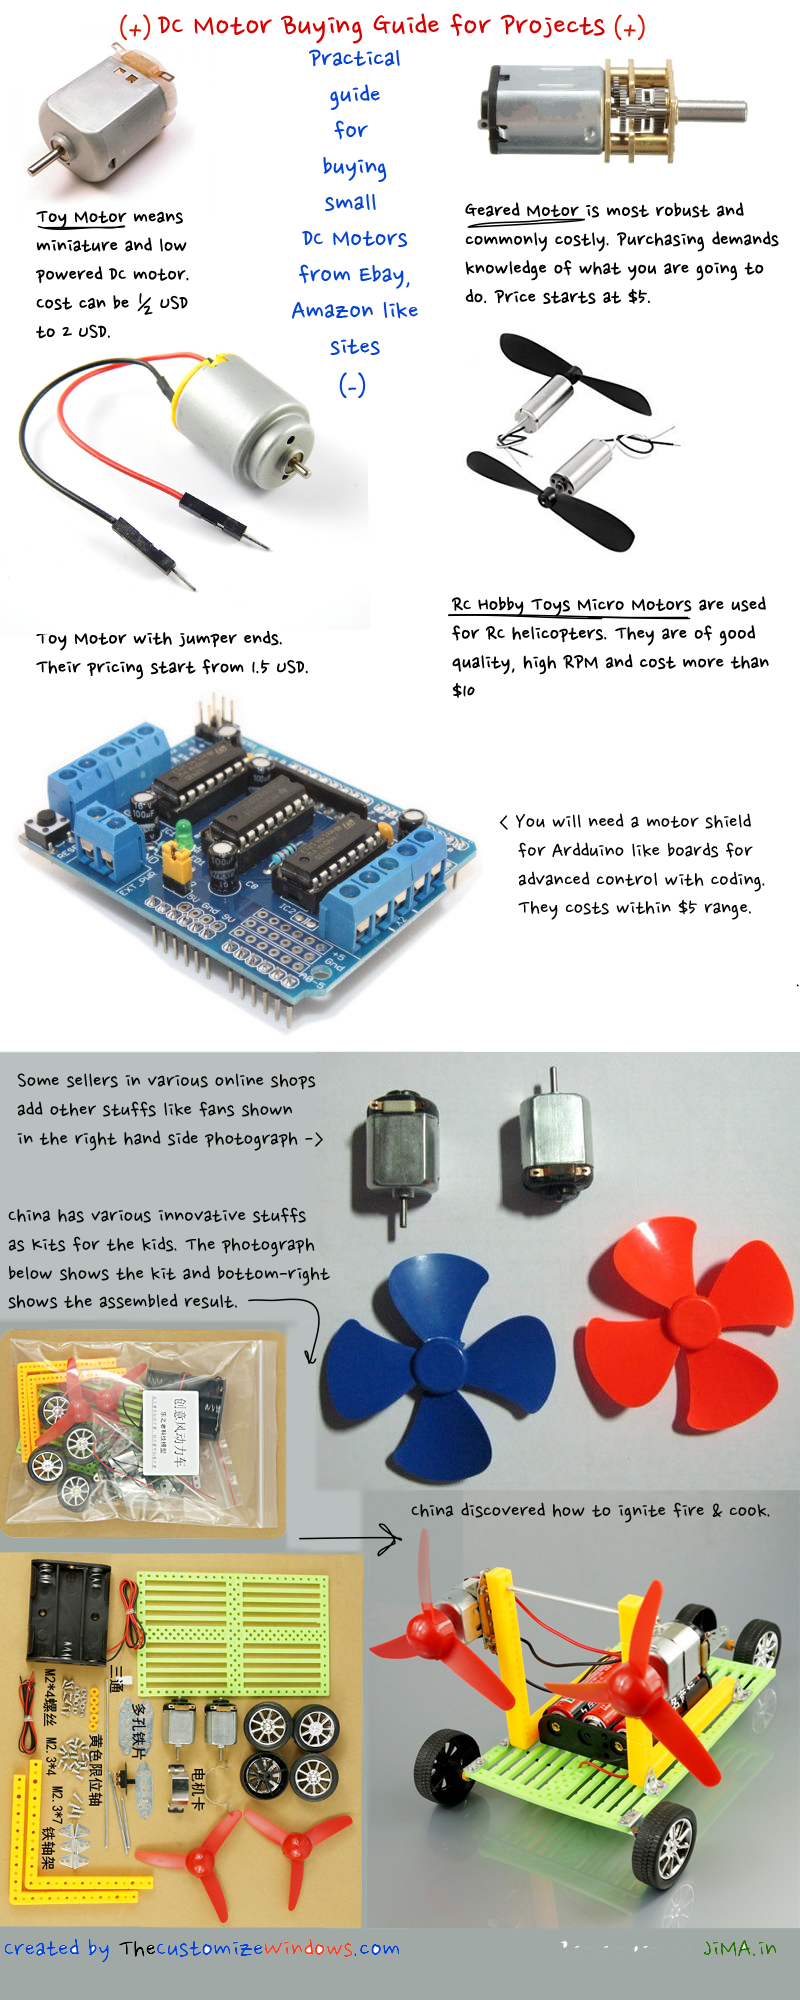 DC-Motor-Buying-Guide-for-DIY-Electronics-Projects